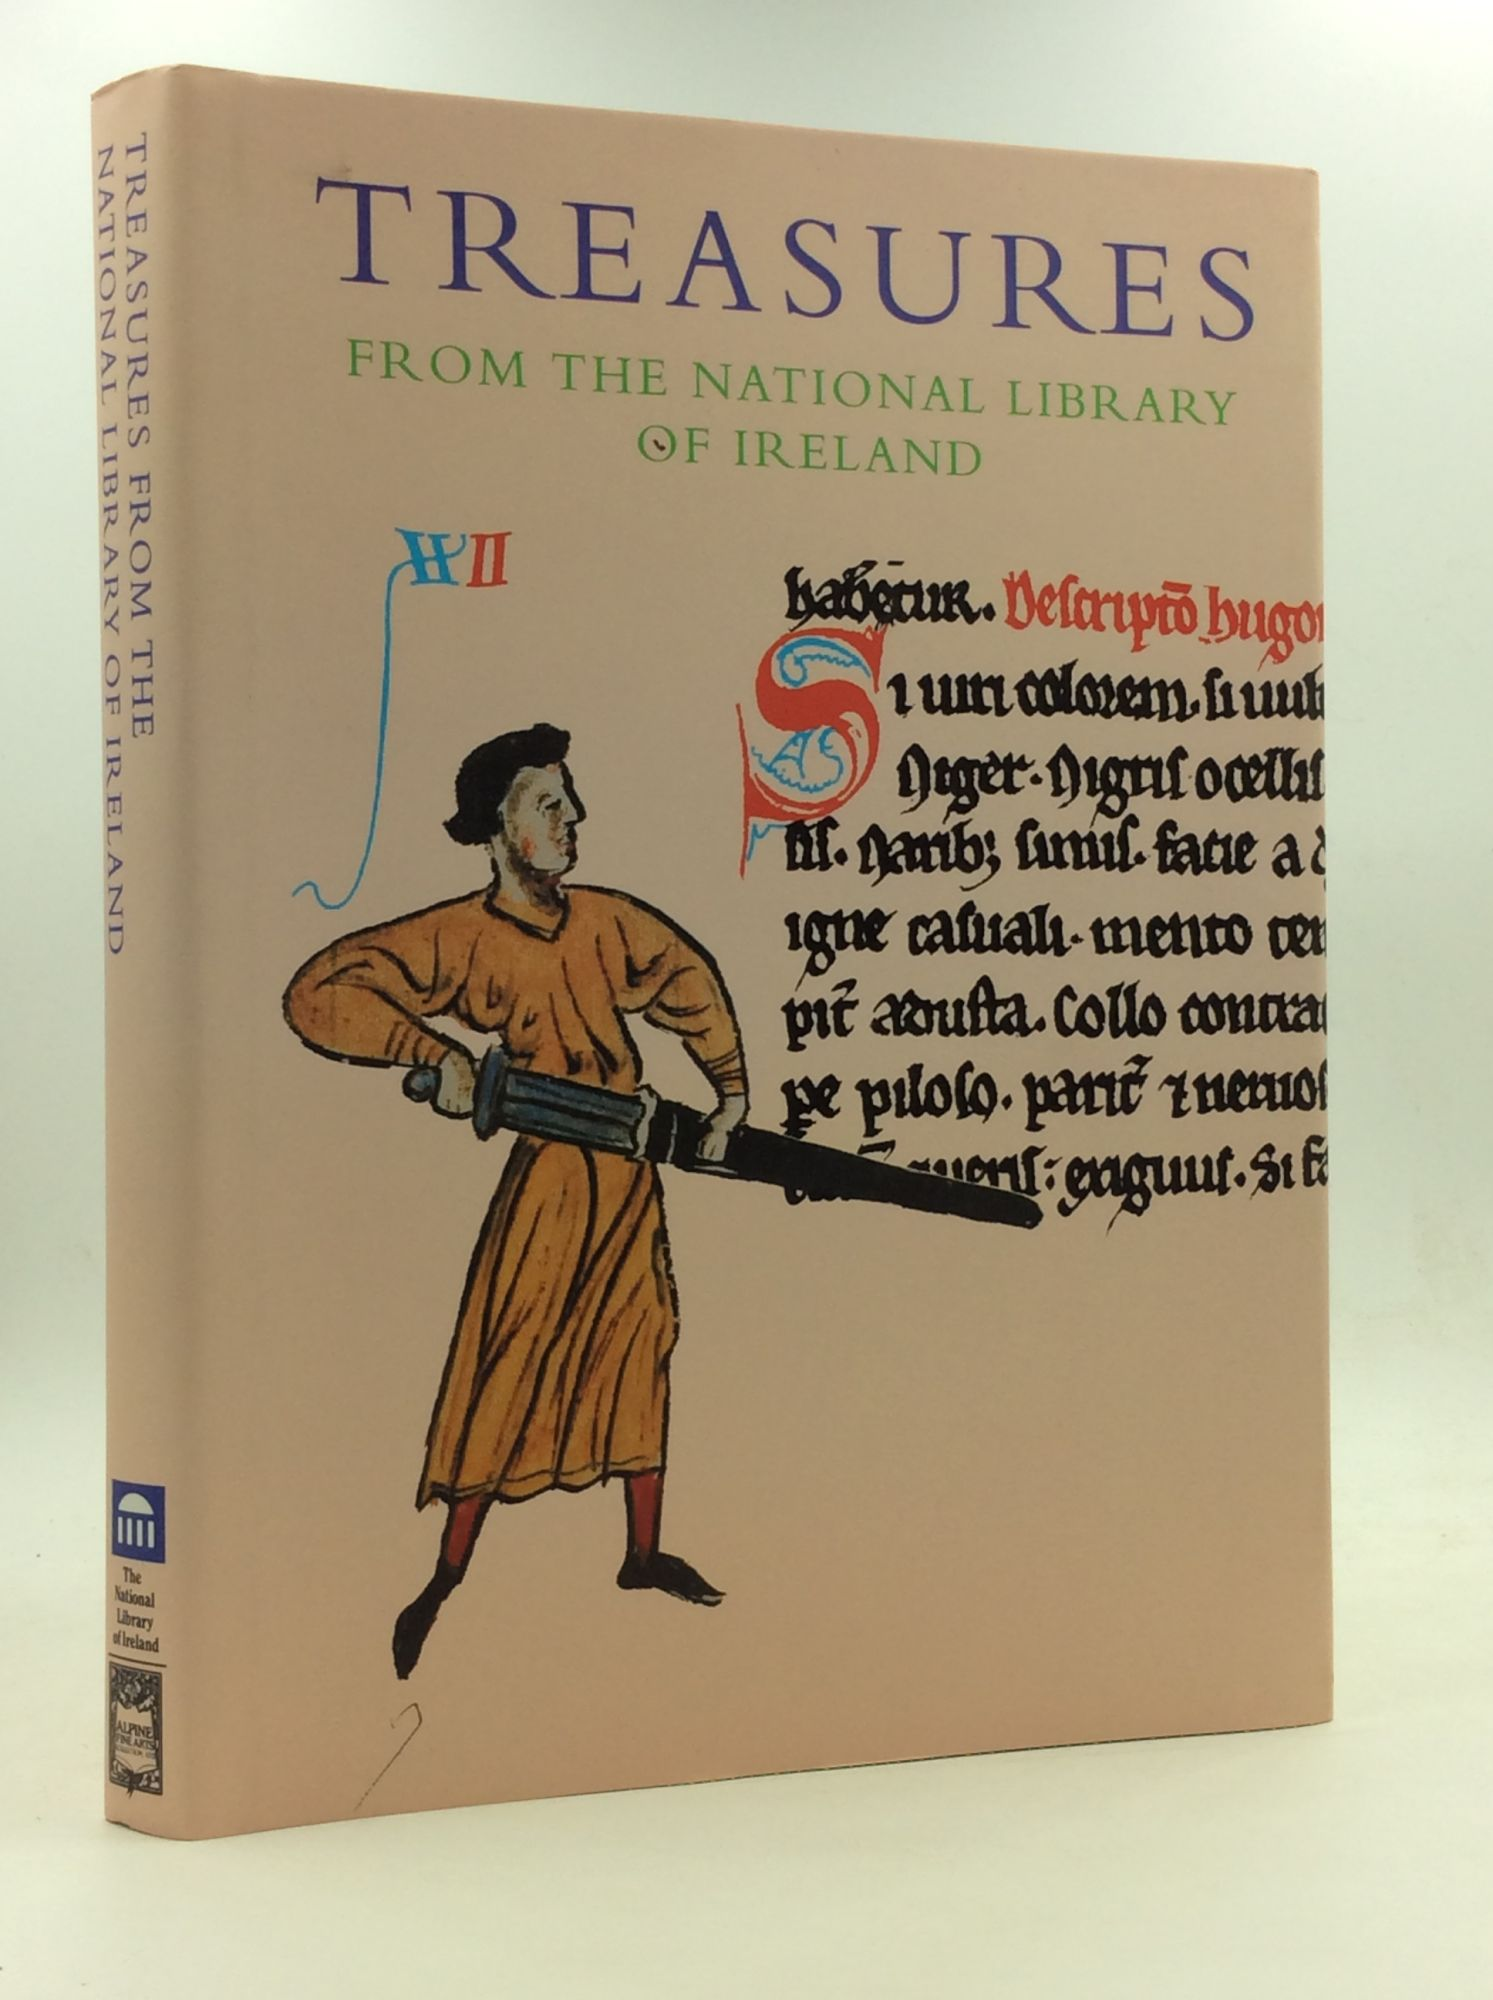 NOEL KISSANE, ED - Treasures from the National Library of Ireland